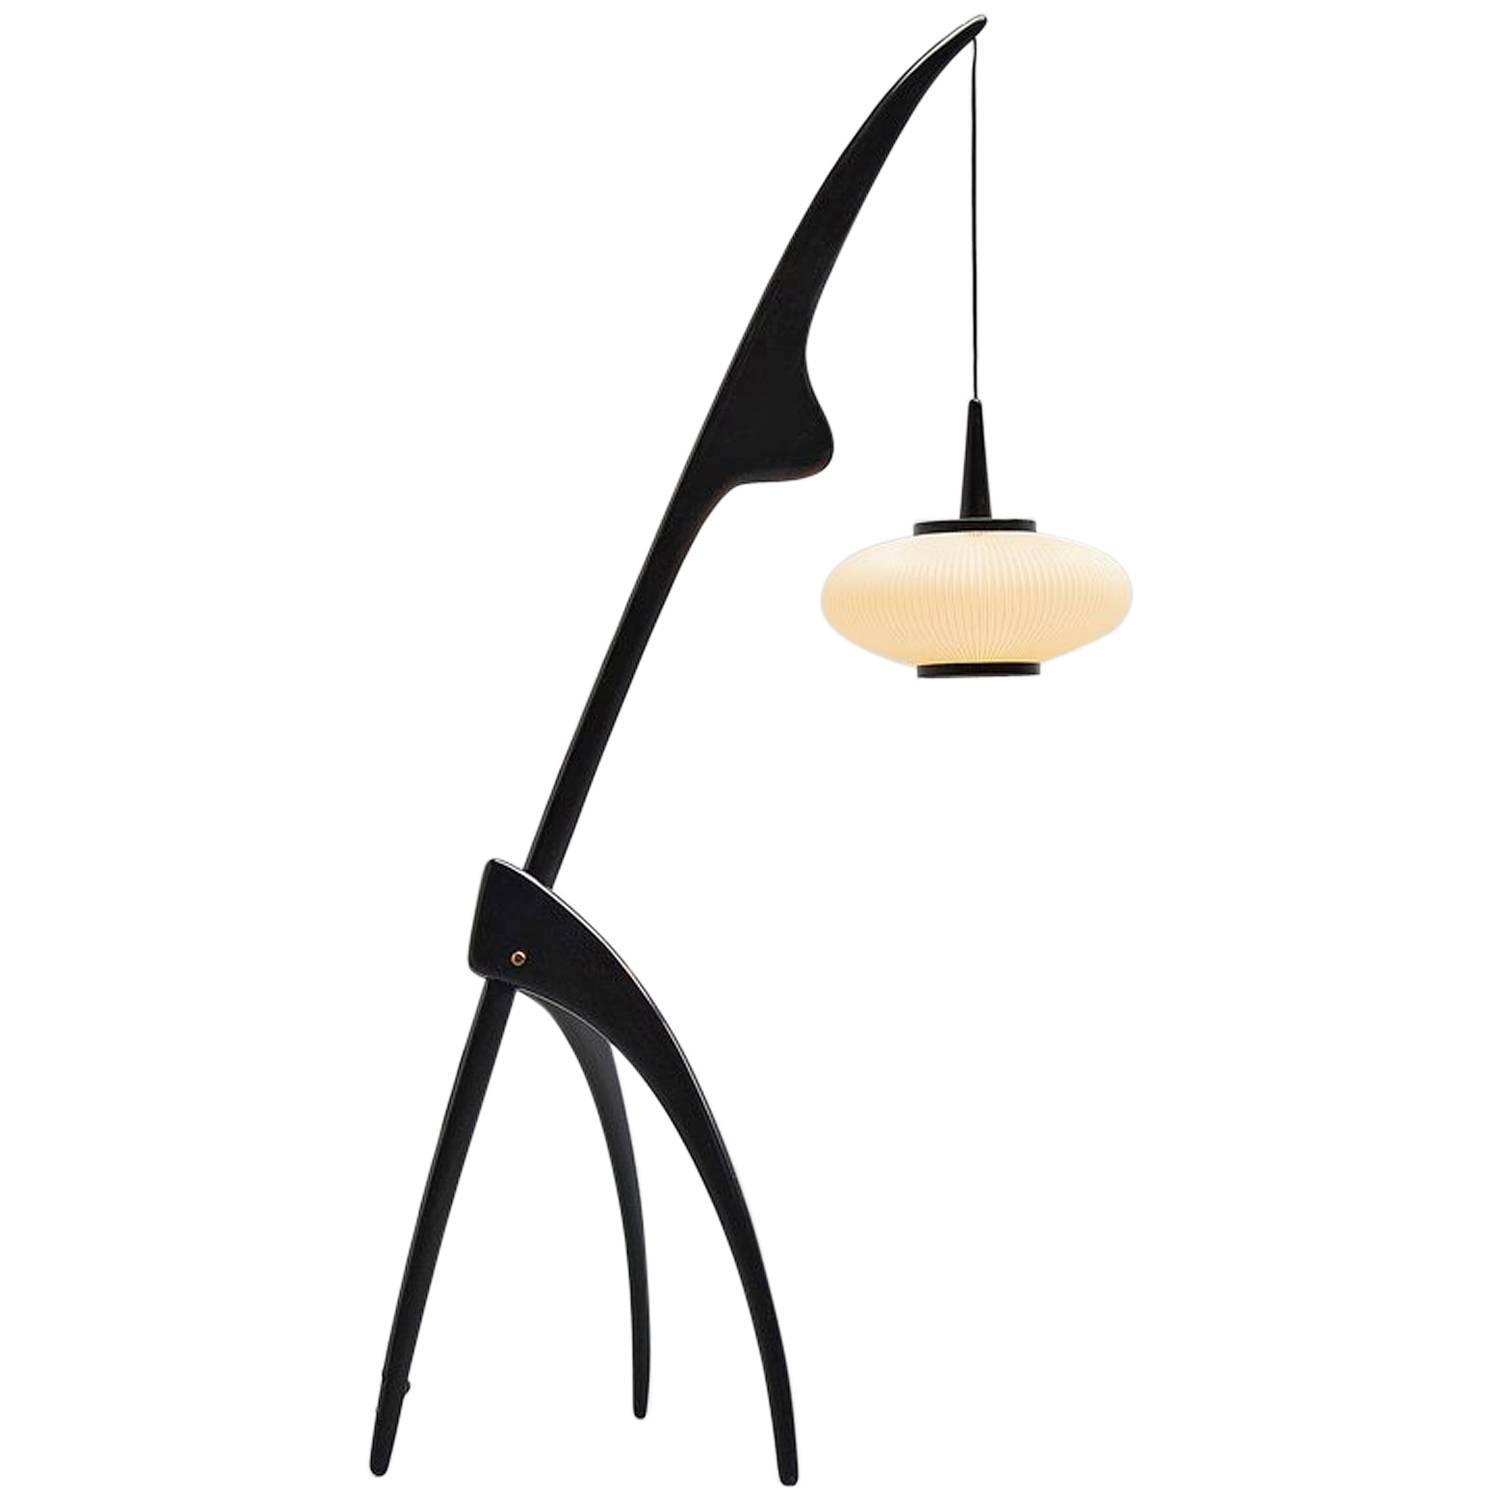 rispal praying mantis floor lamp france 1952 at 1stdibs. Black Bedroom Furniture Sets. Home Design Ideas